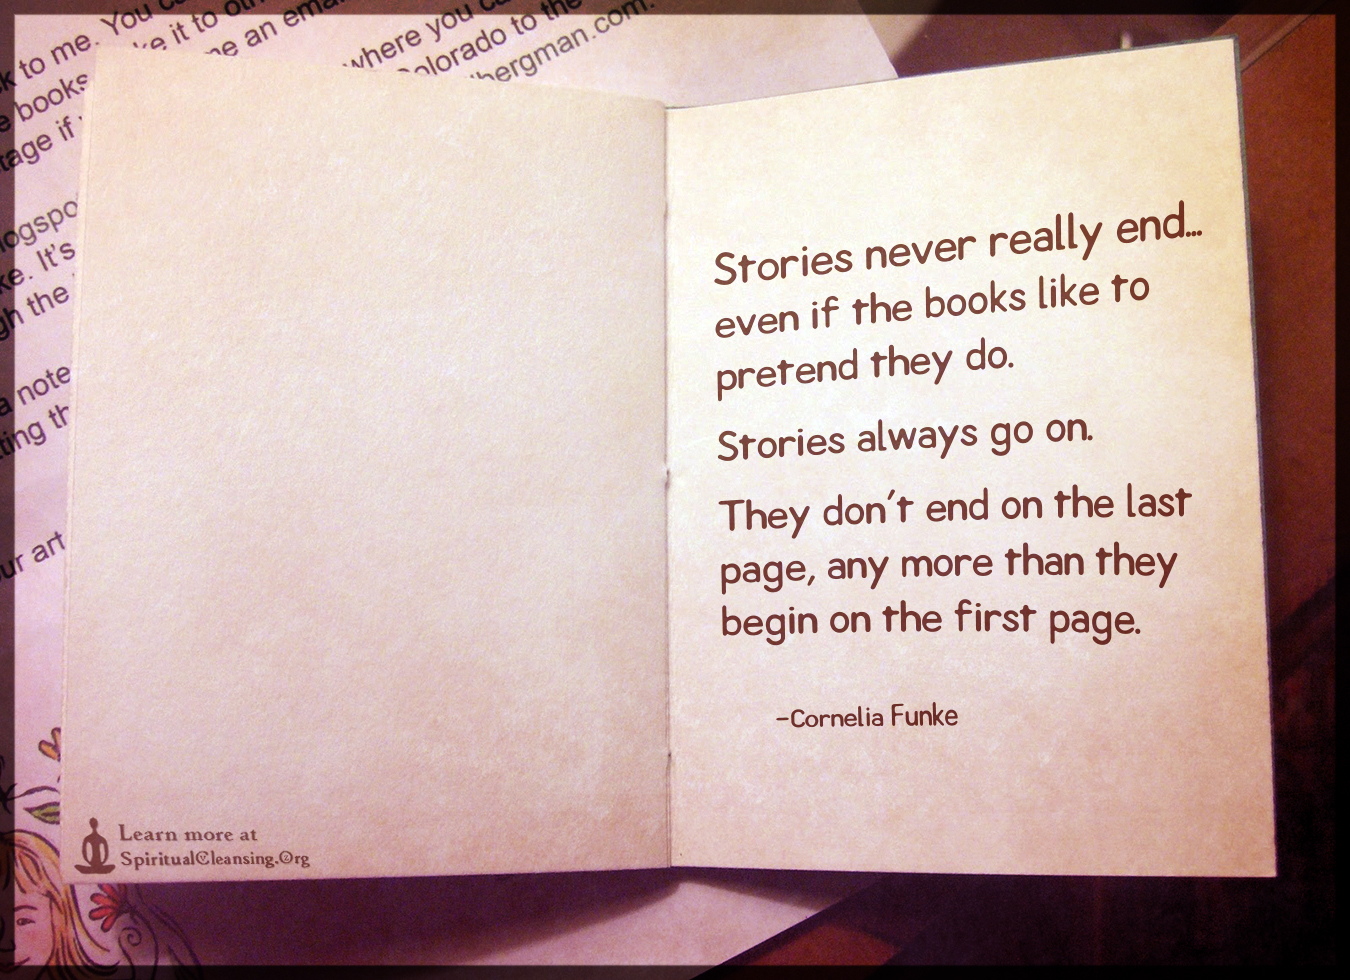 Stories never really end...even if the books like to pretend they do.